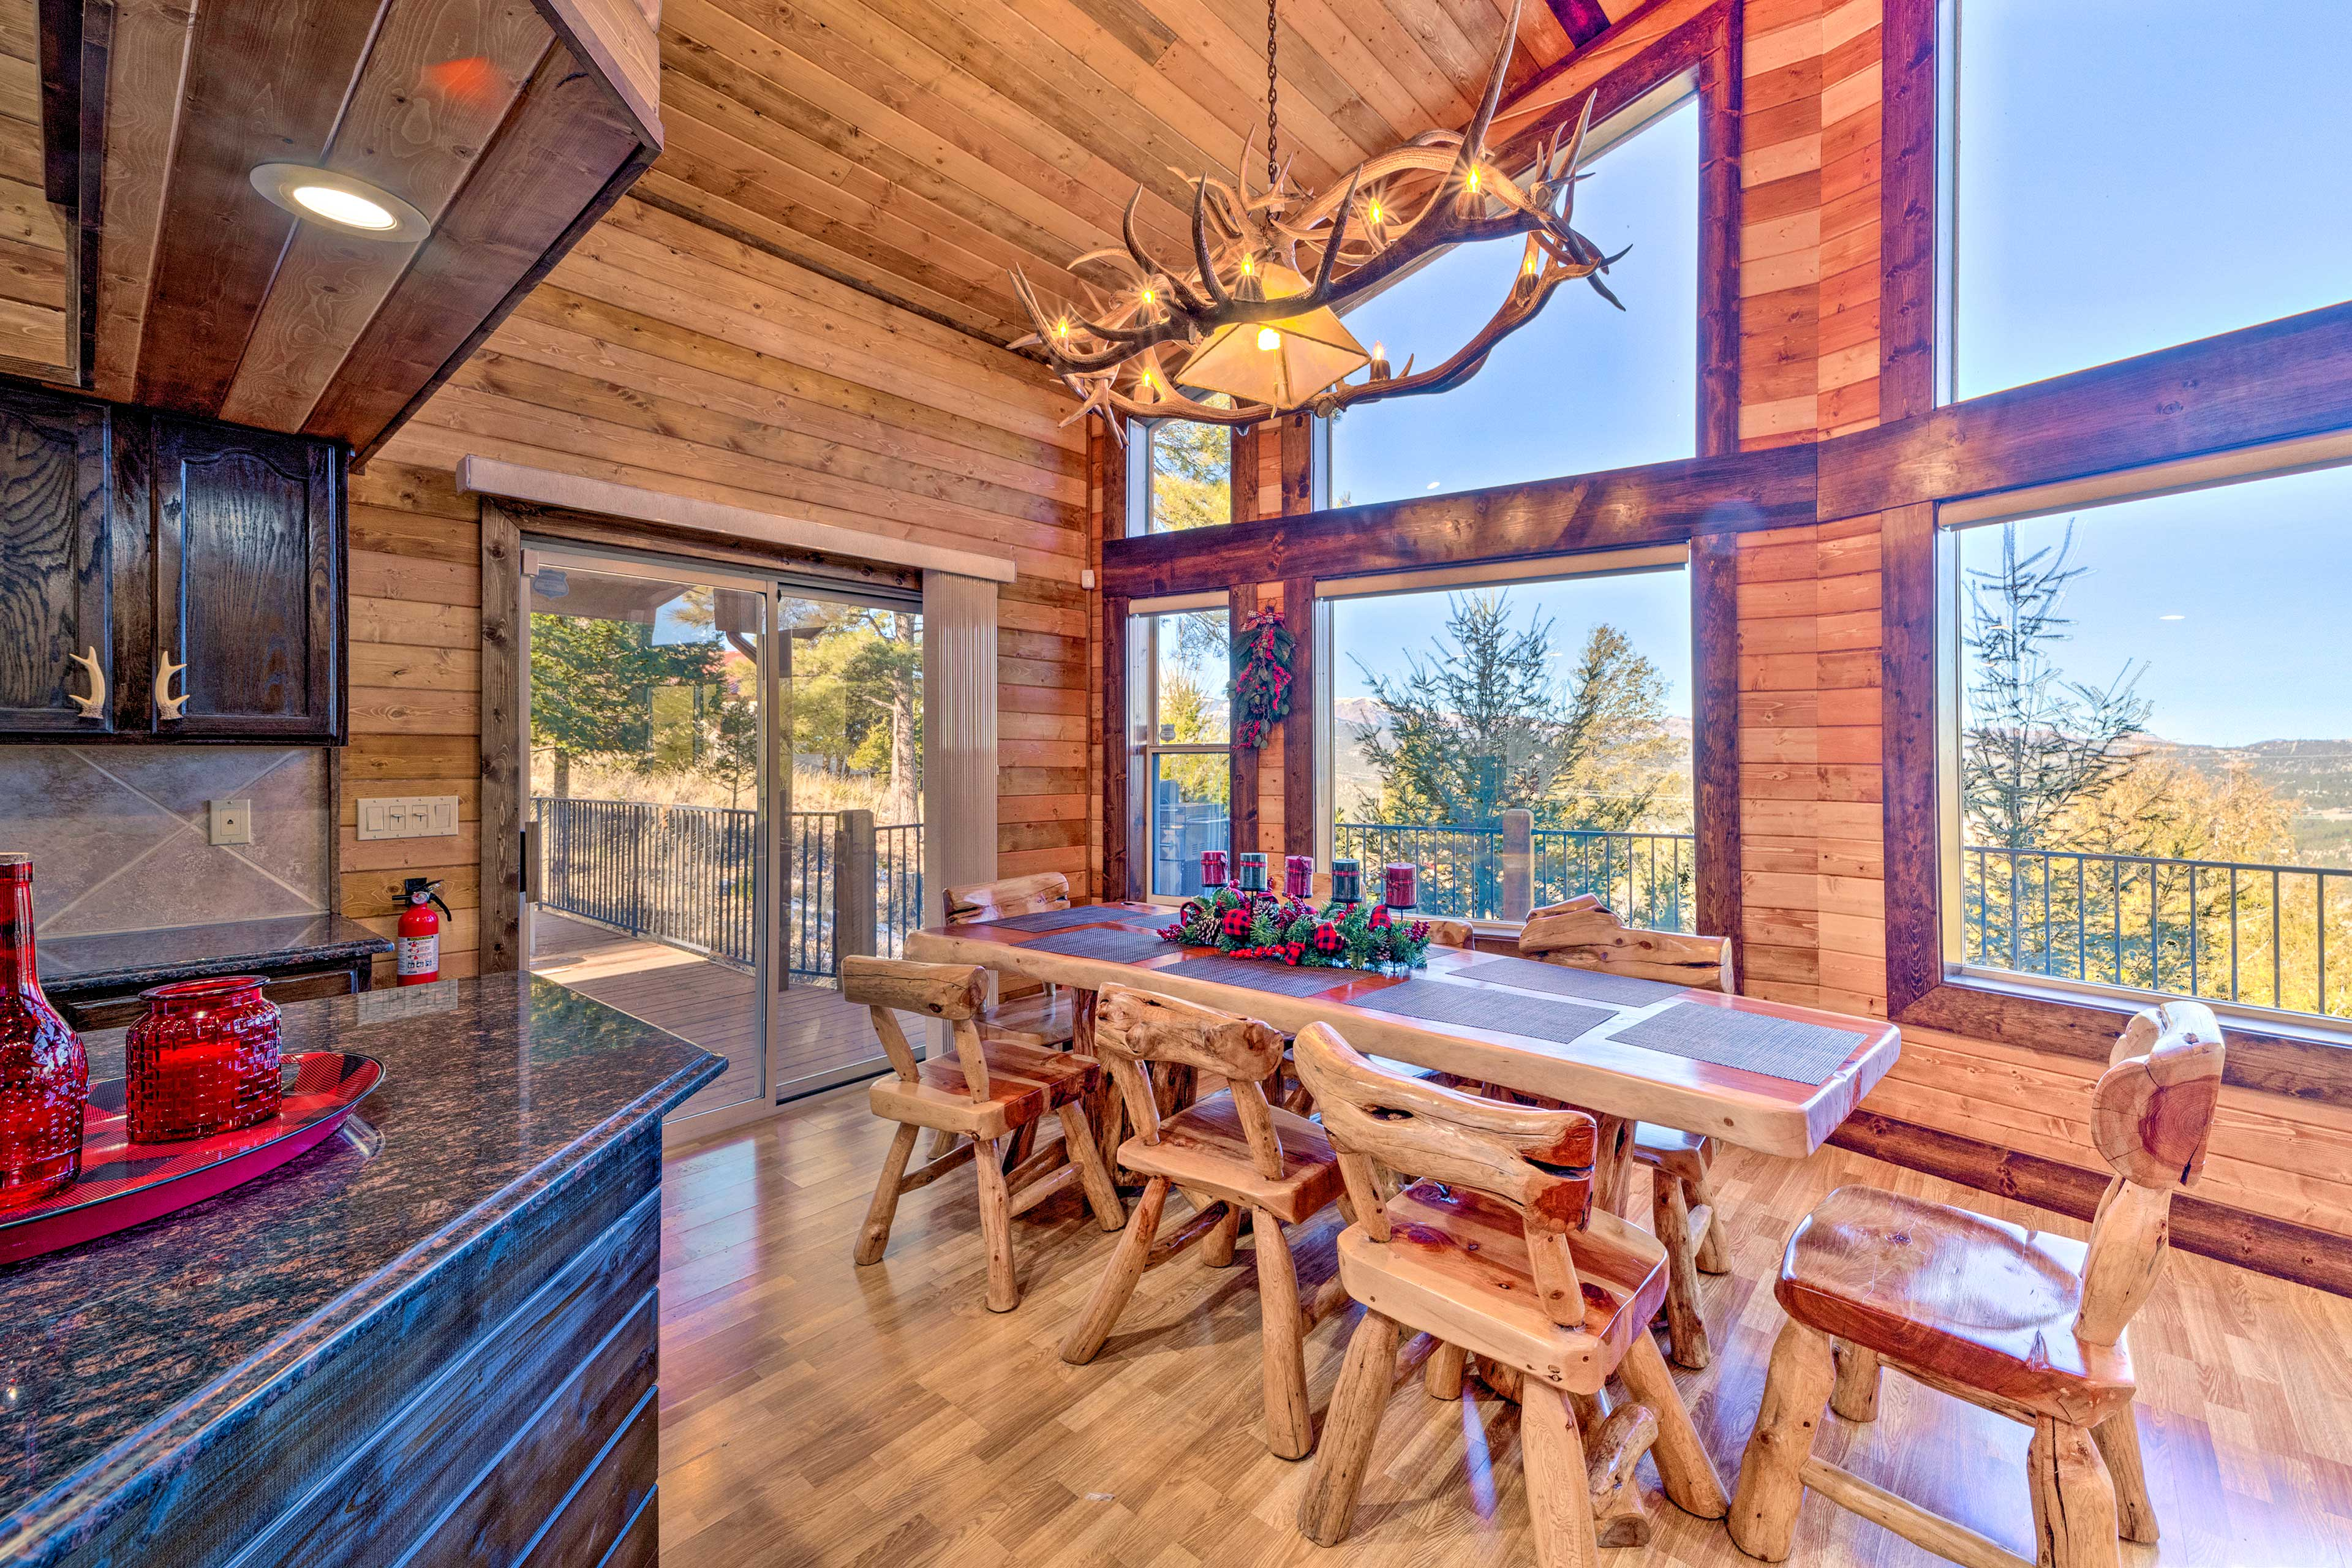 Delight in home-cooked meals while getting lose in the surrounding views.